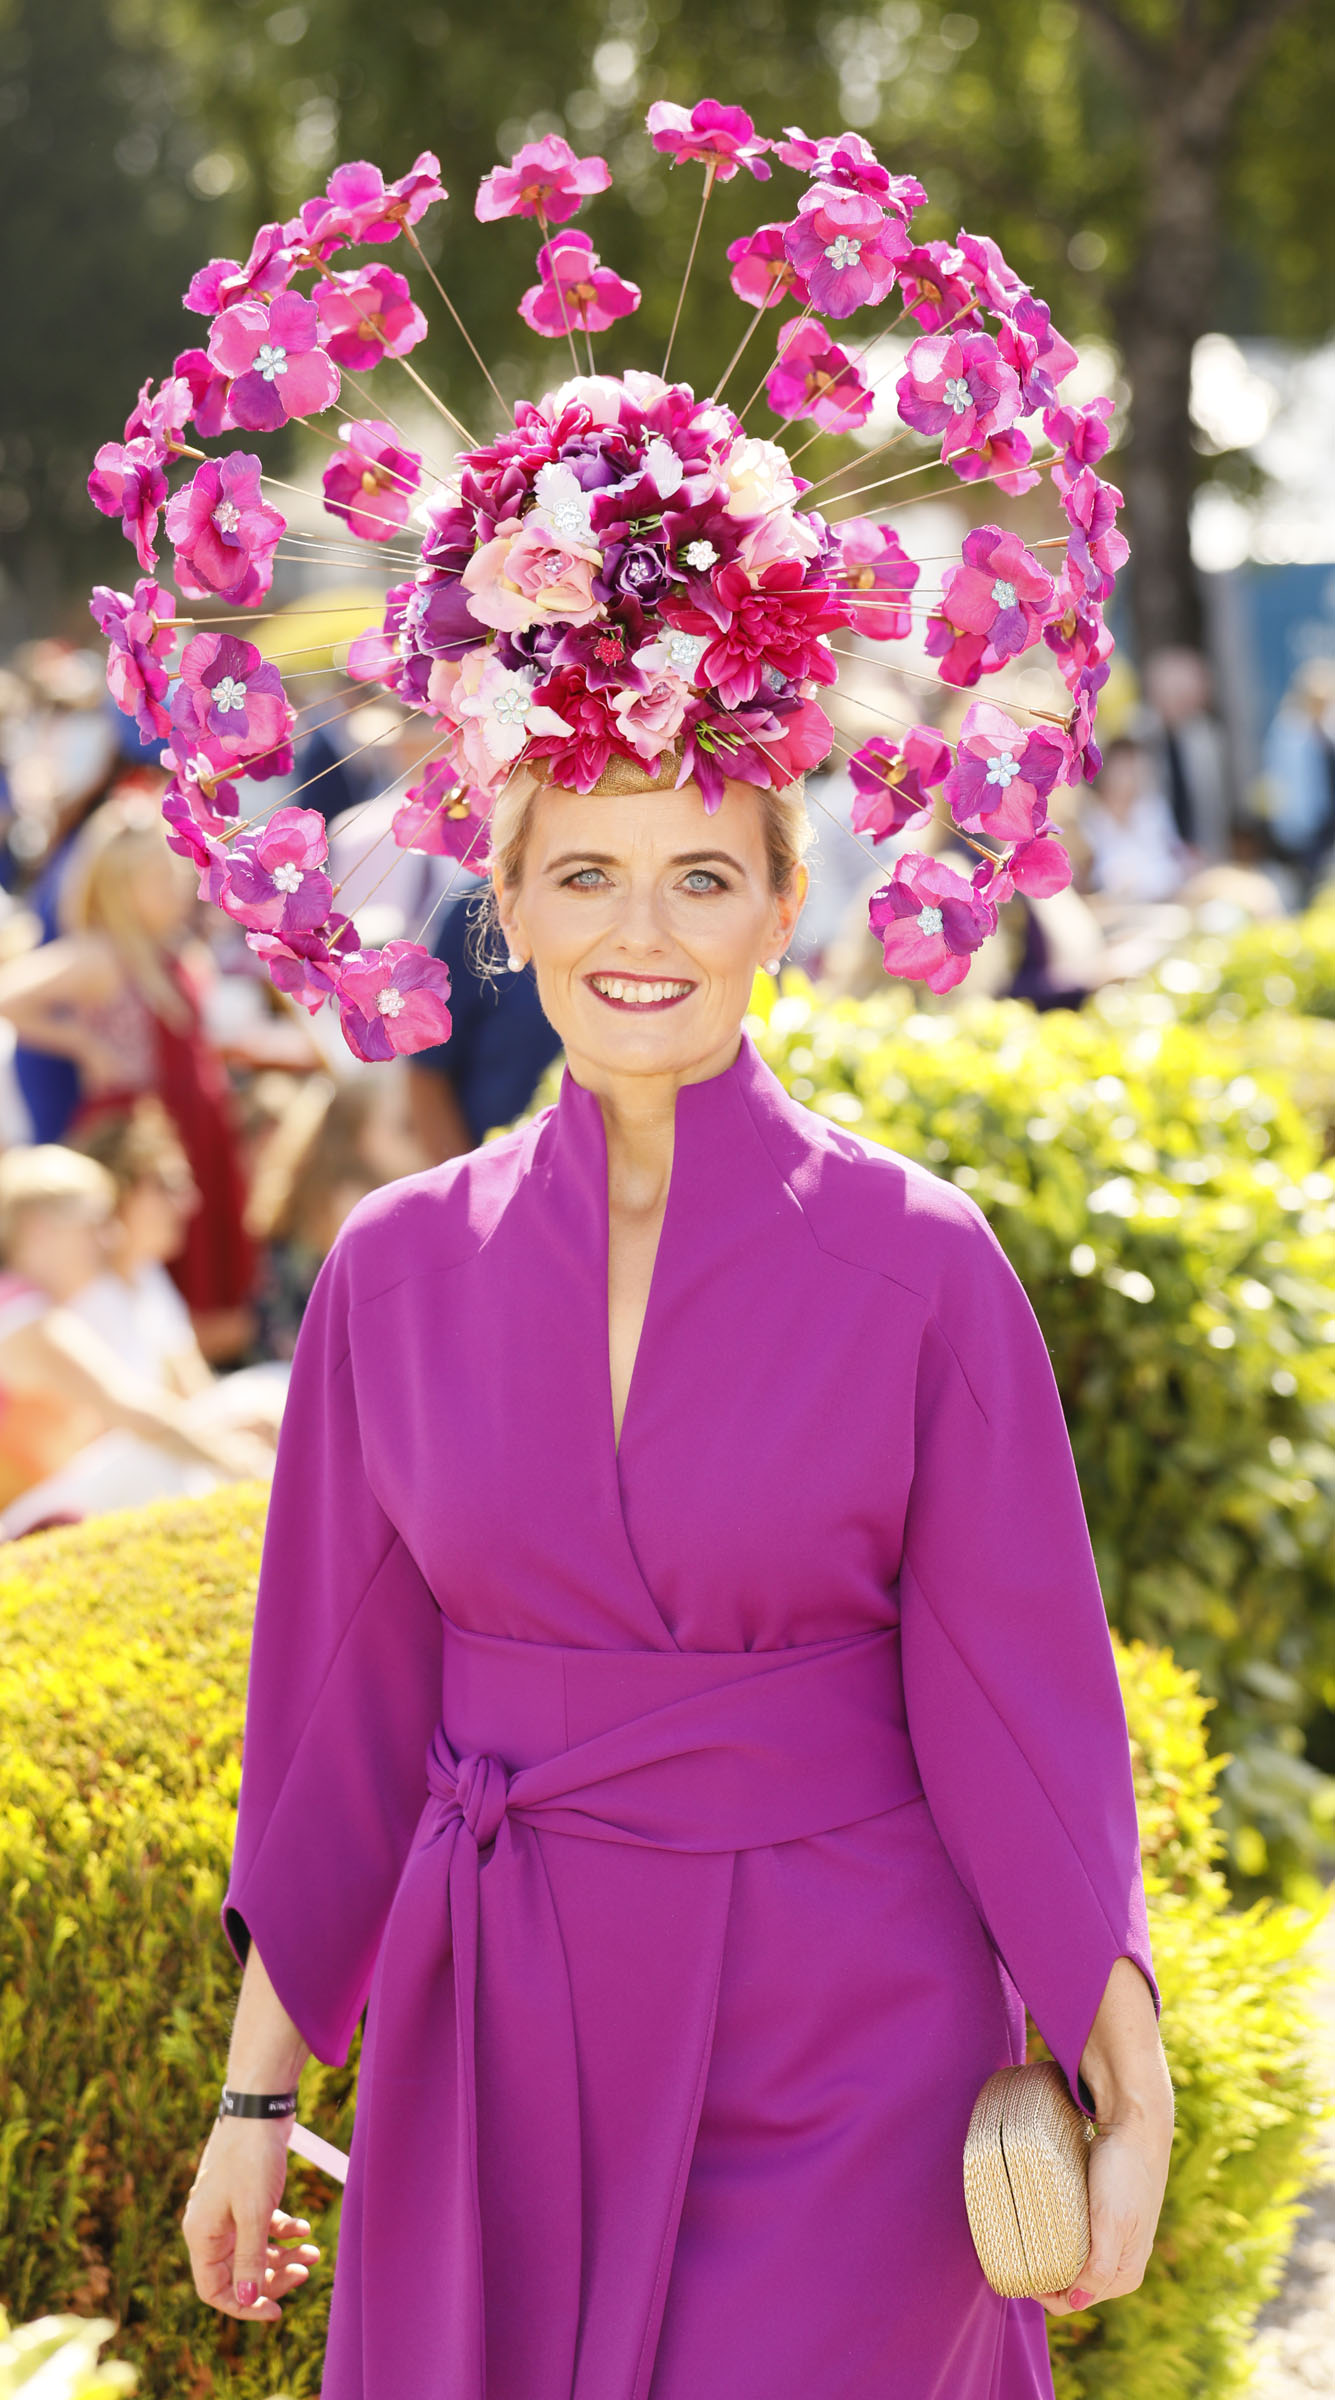 Emer Kilroy at the Dundrum Town Centre Ladies' Day at the Dublin Horse Show in the RDS. Photo: Kieran Harnett